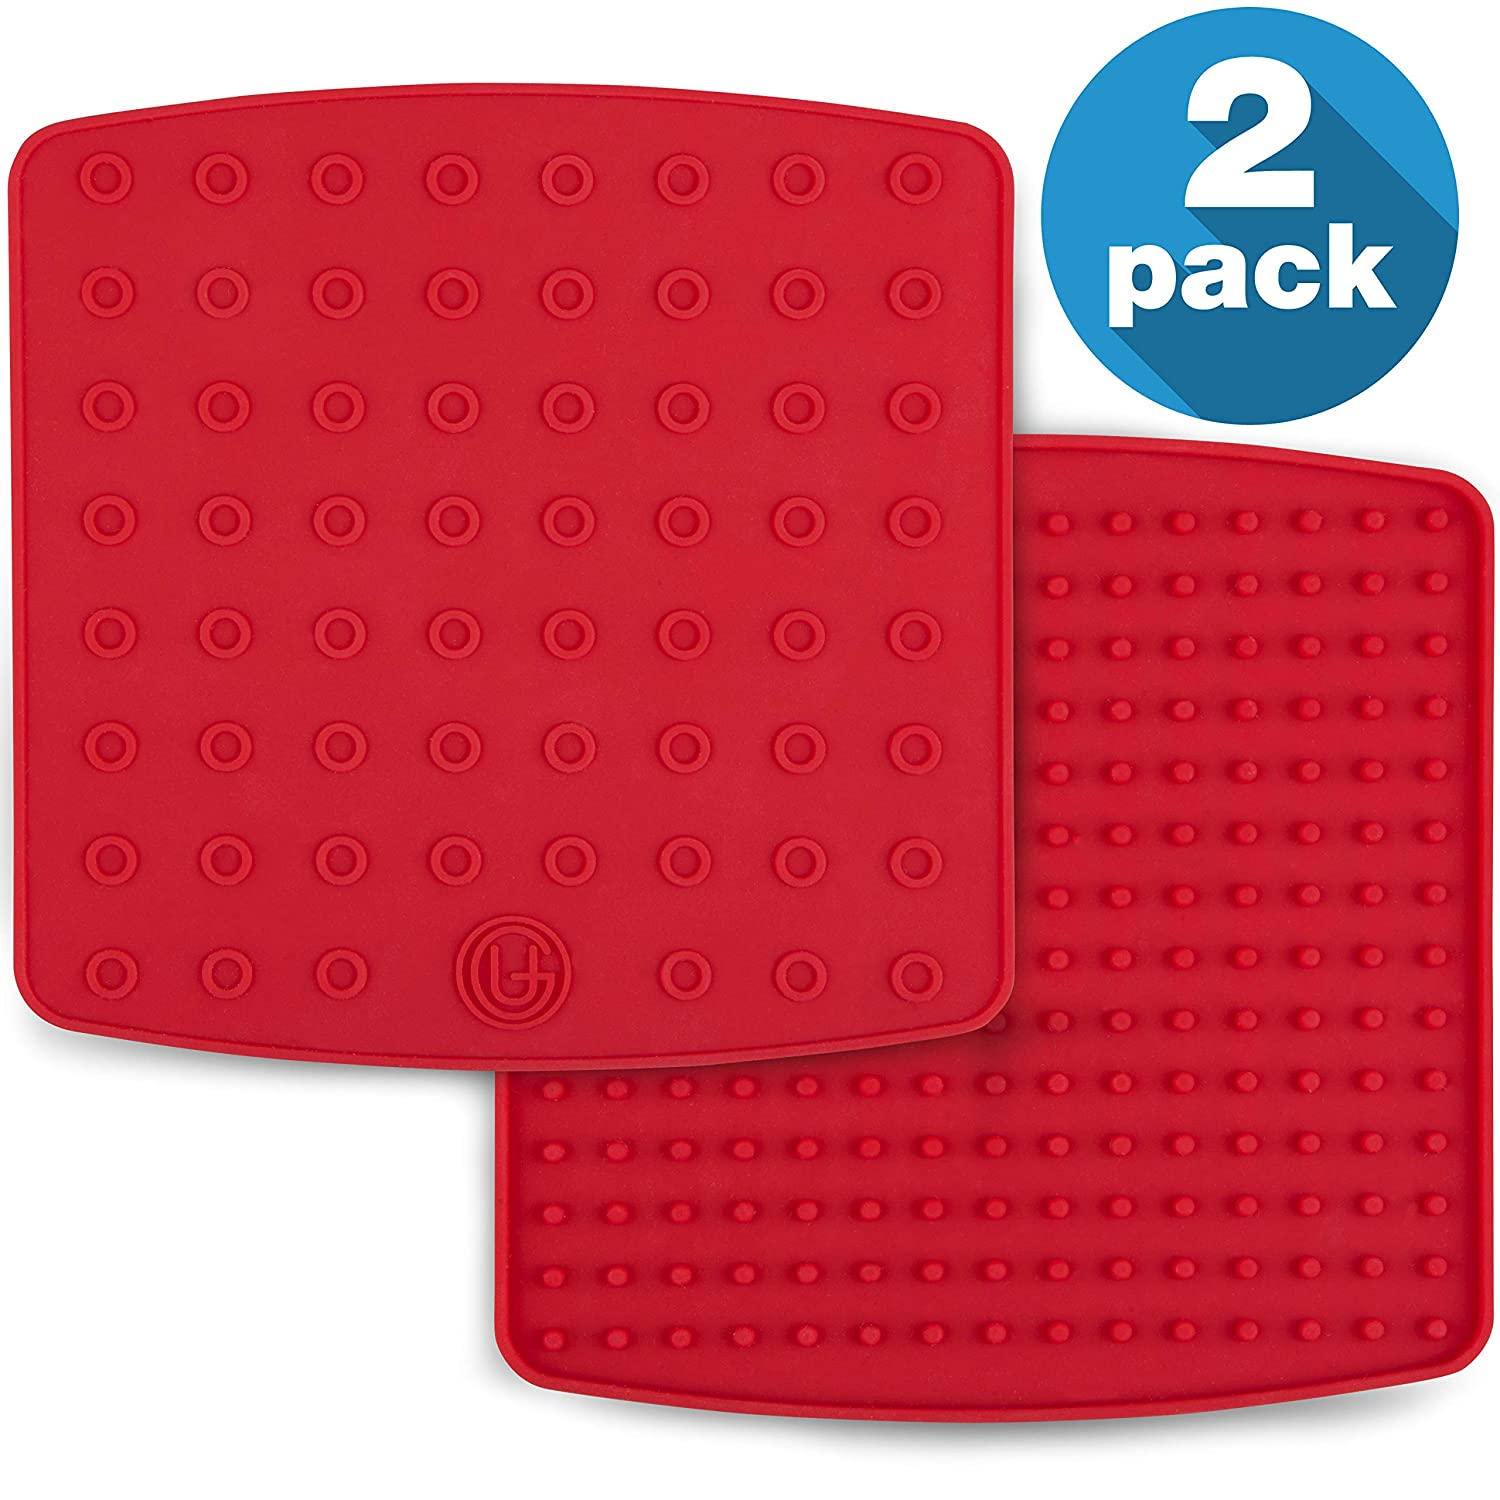 Premium Silicone Pot Holder for Pots/Pans | Multipurpose Trivets | Hot Pad, Spoon Rest, Coaster and More | 2 Pads | Featuring Heat Resistant Core Tech | UpGood Pro Series (Cool Kitchen Tools, Red)